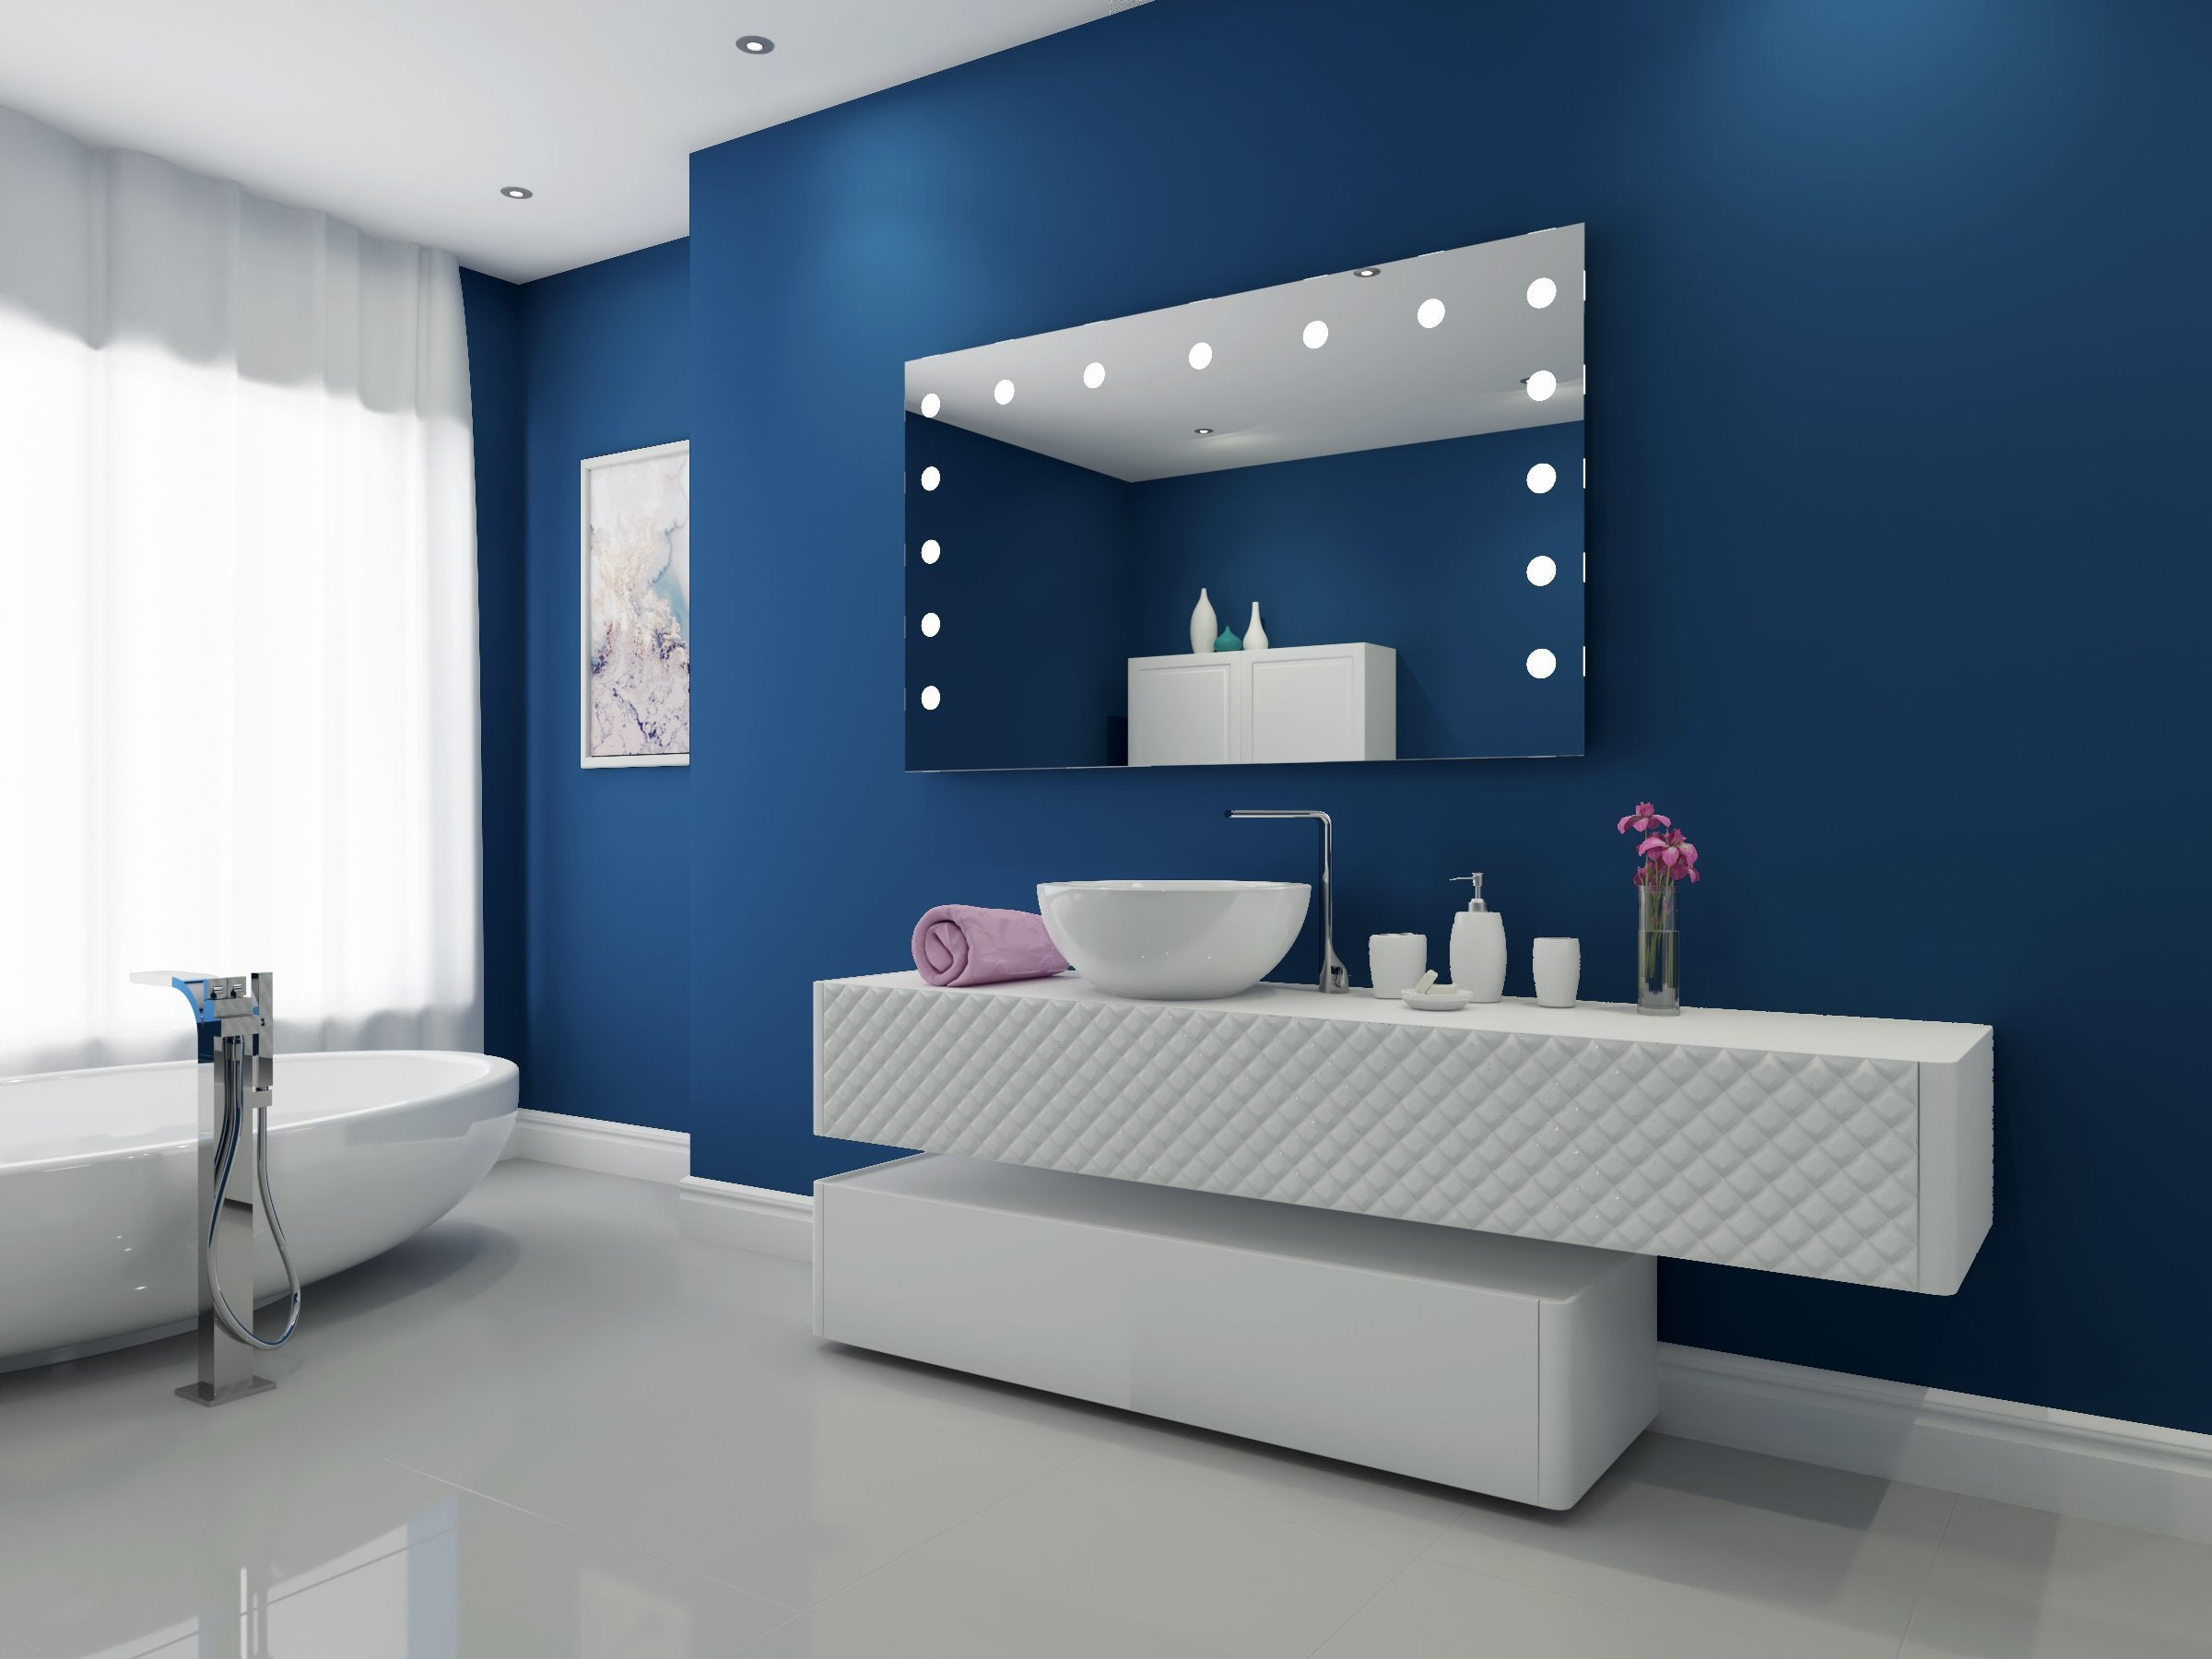 Led Bathroom Mirror Hollywood 60 X 36 In Paris Mirror